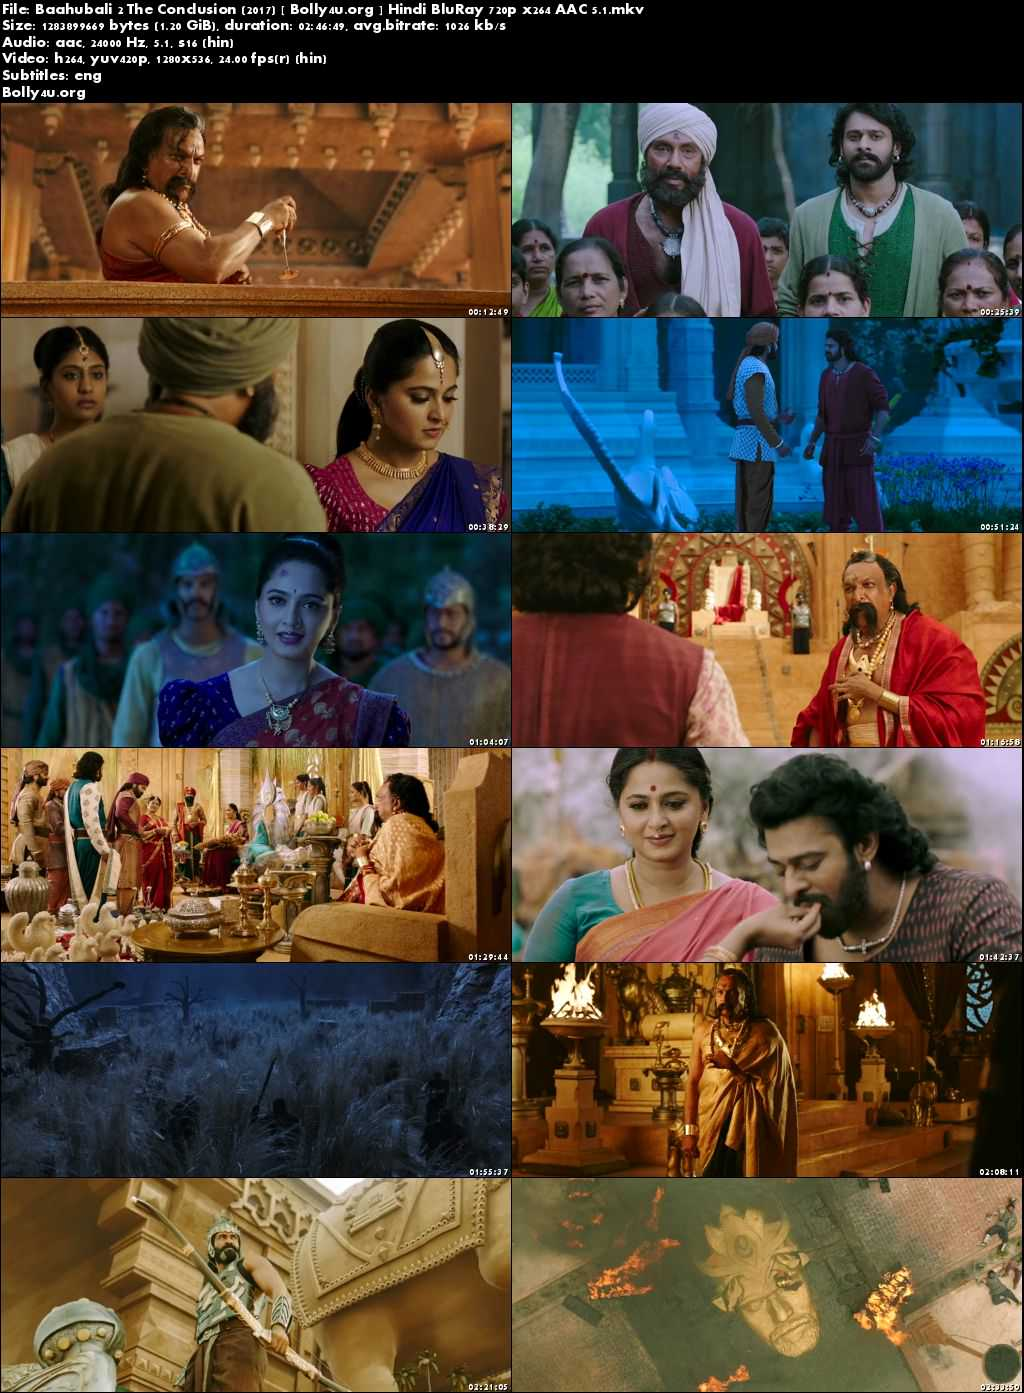 Bahubali 2 The Conclusion 2017 BluRay Hindi Movie 720p x264 AAC 5.1 Download